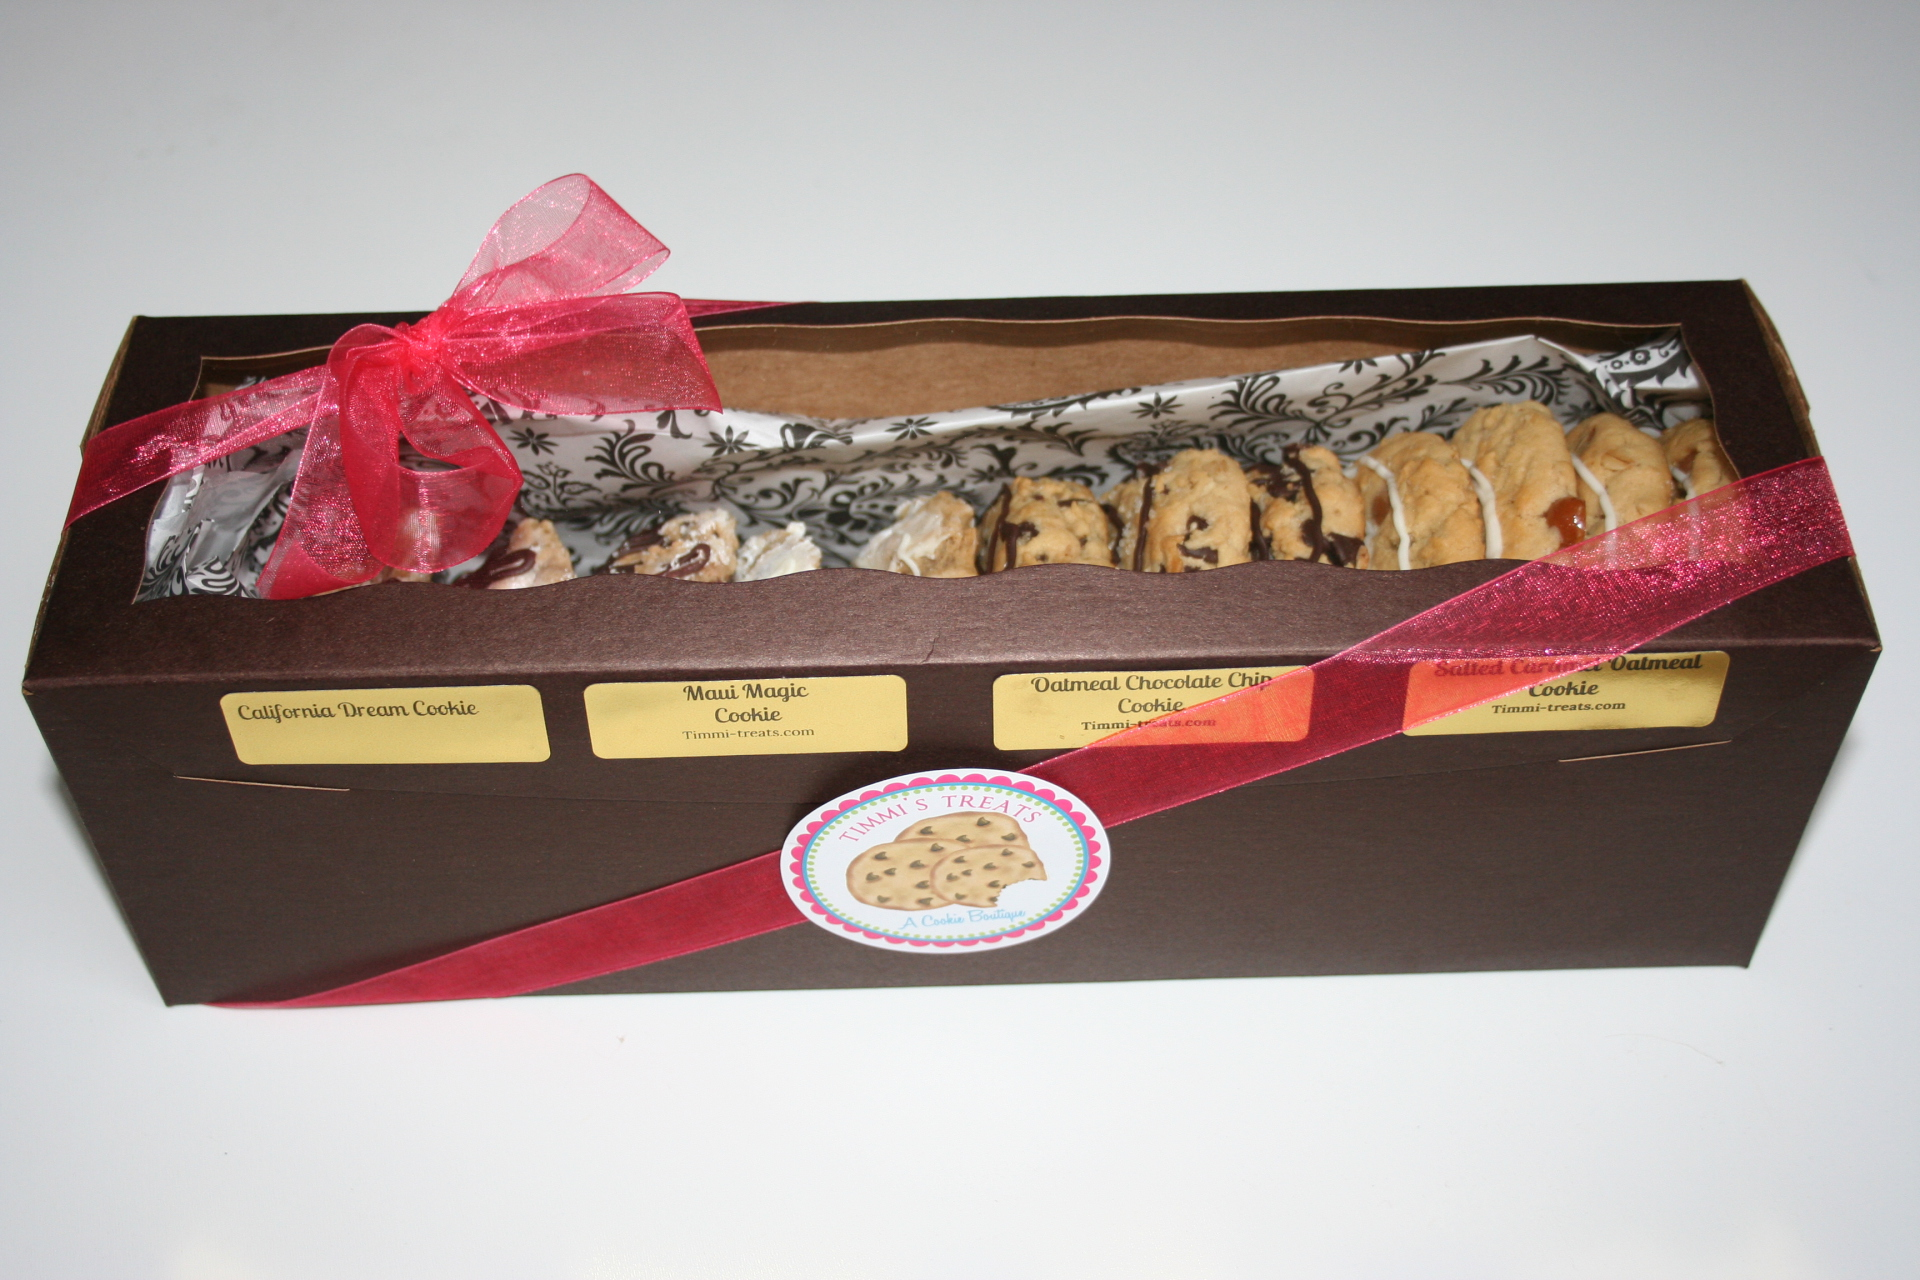 Packaged Gourmet Cookies